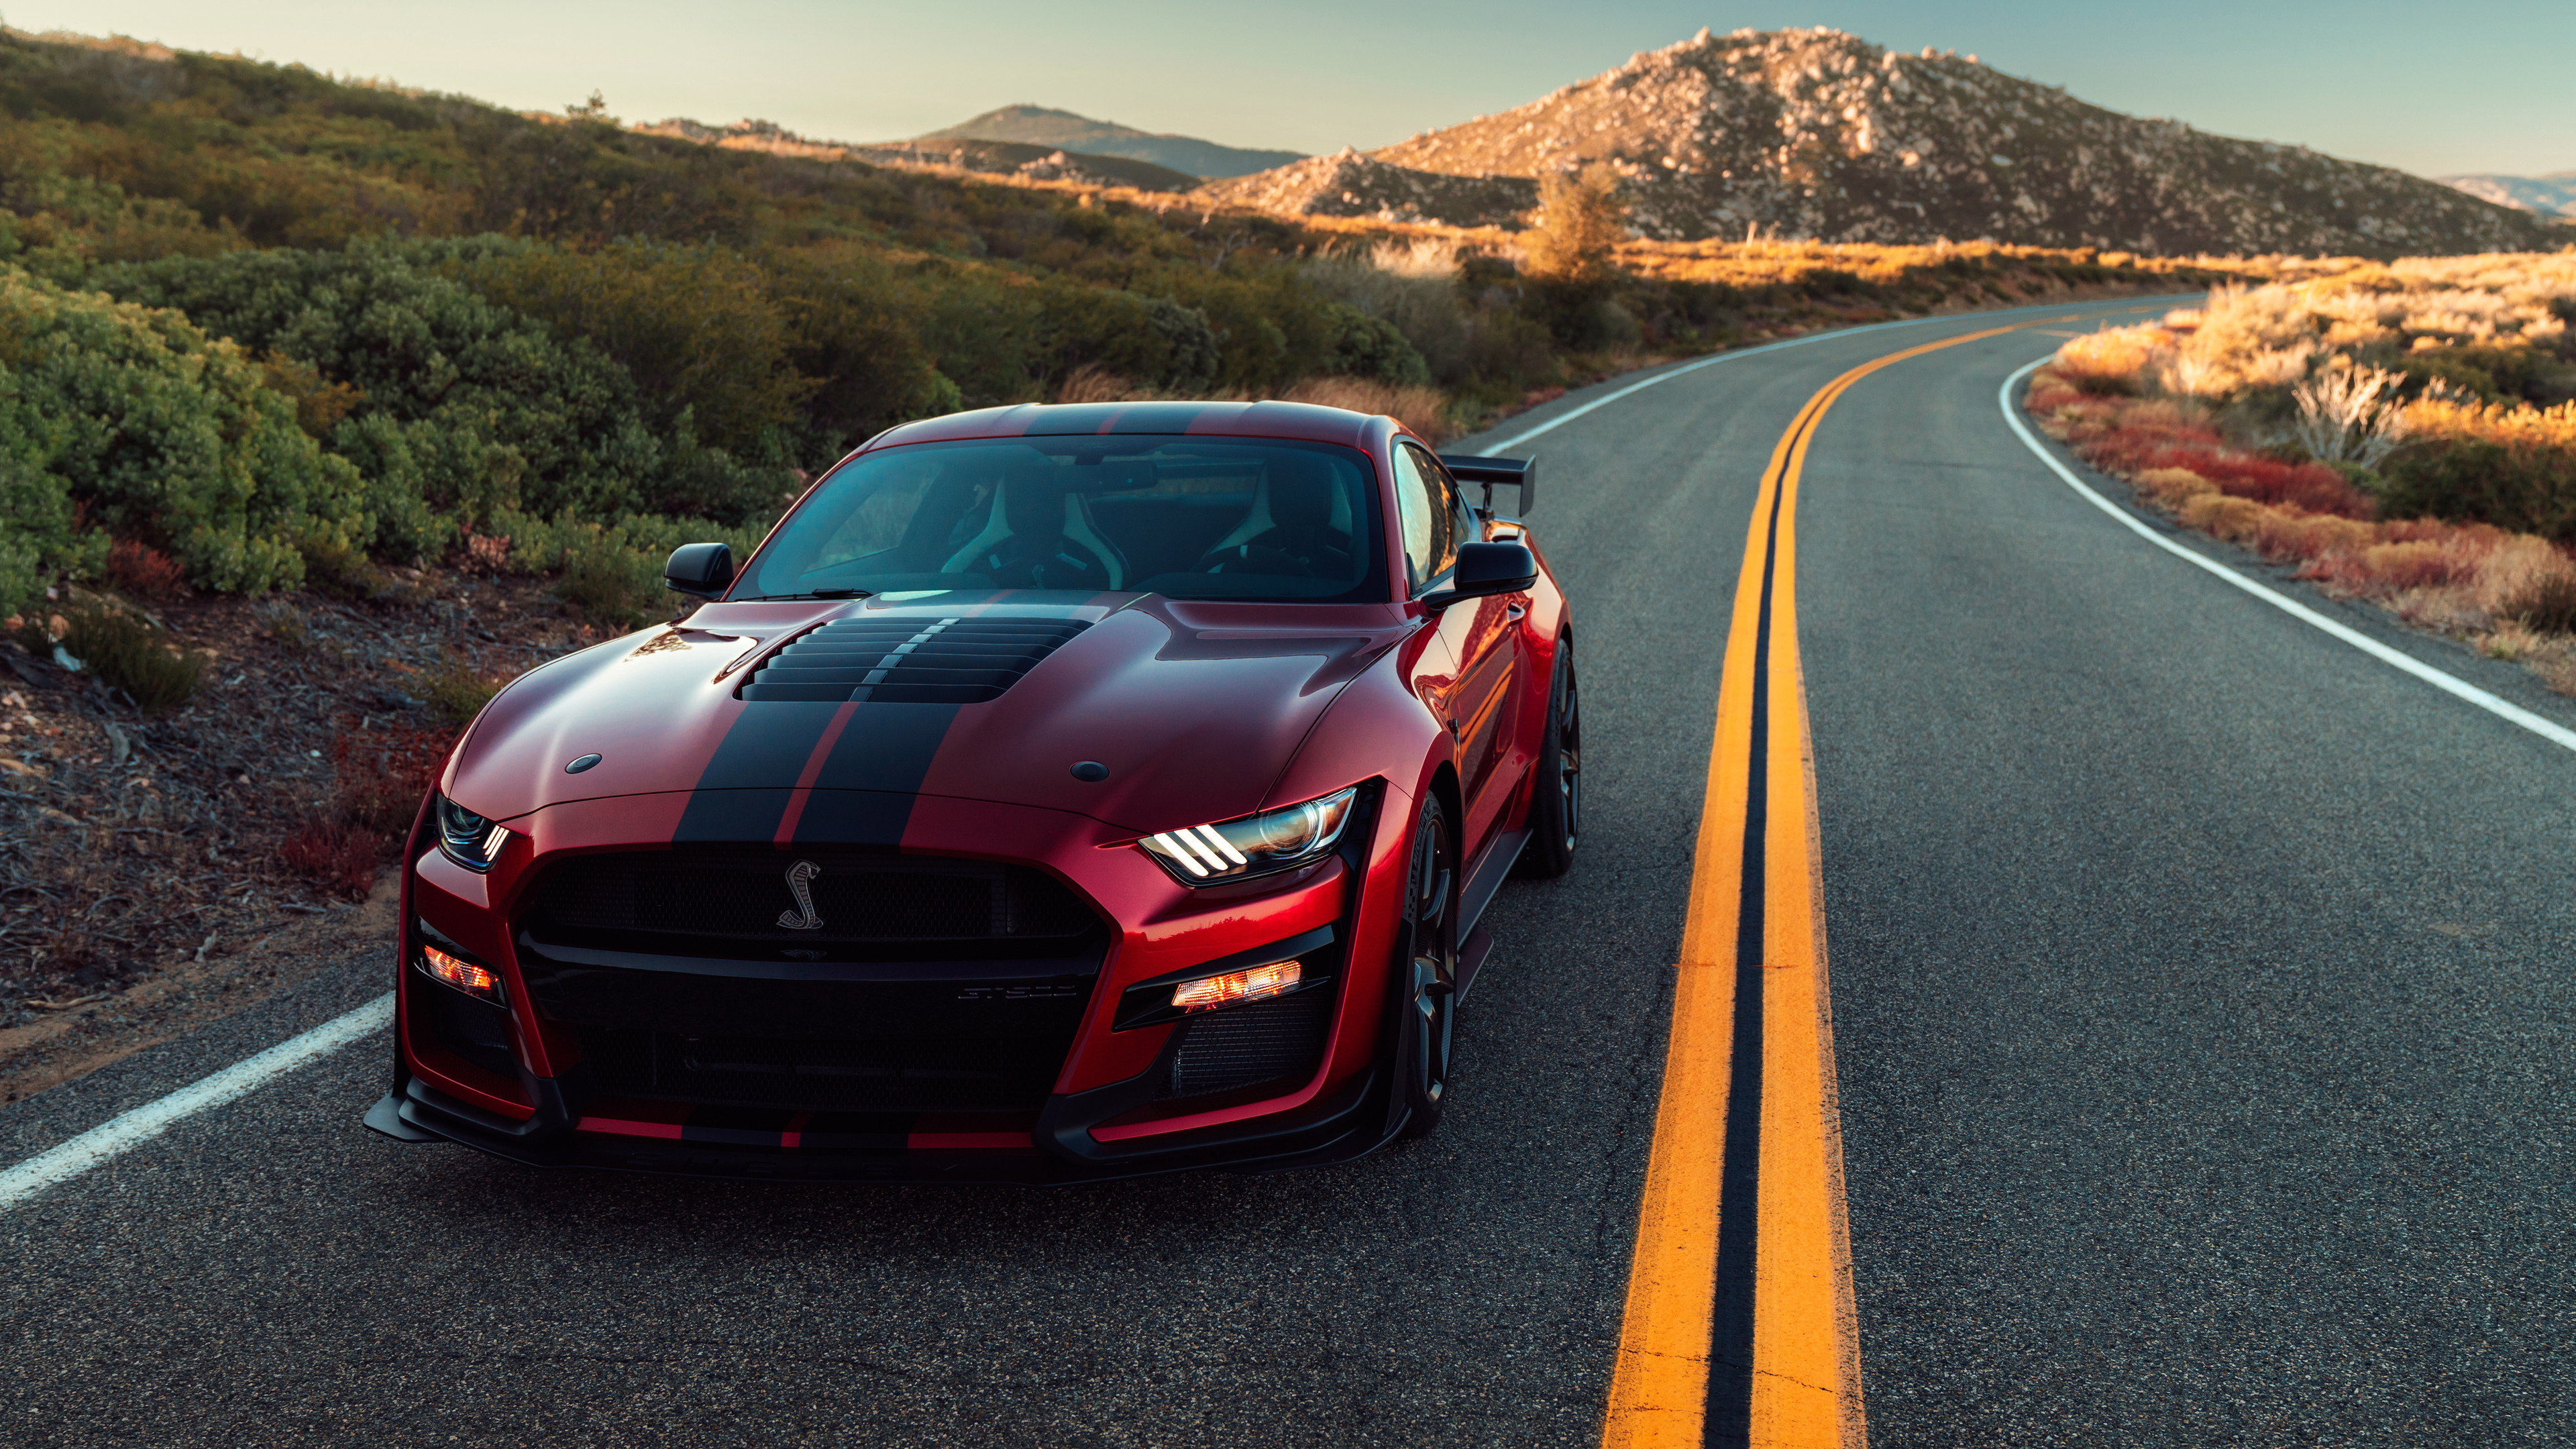 2020 Ford Mustang Shelby GT500 4k shelby wallpapers, hd ...